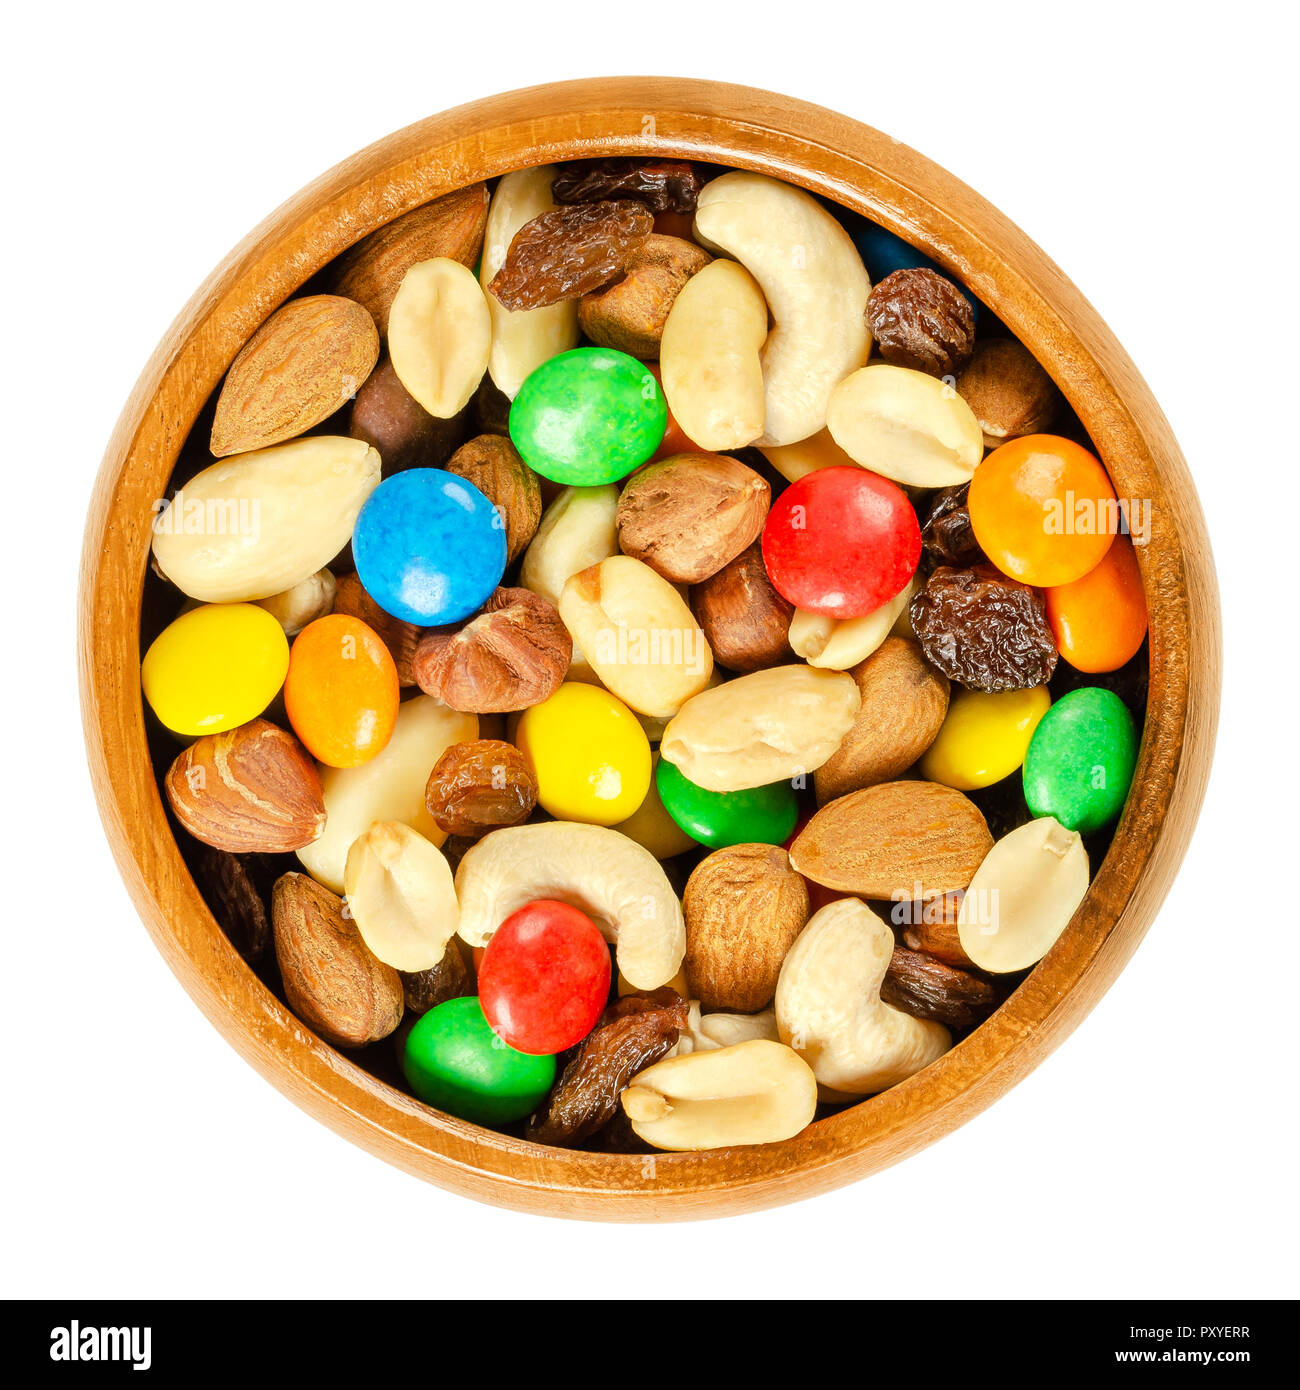 Trail mix in wooden bowl. Snack mix. Almonds, cashews, peanuts, hazelnuts, raisins and colorful chocolate candies. Food to be taken along hikes. - Stock Image